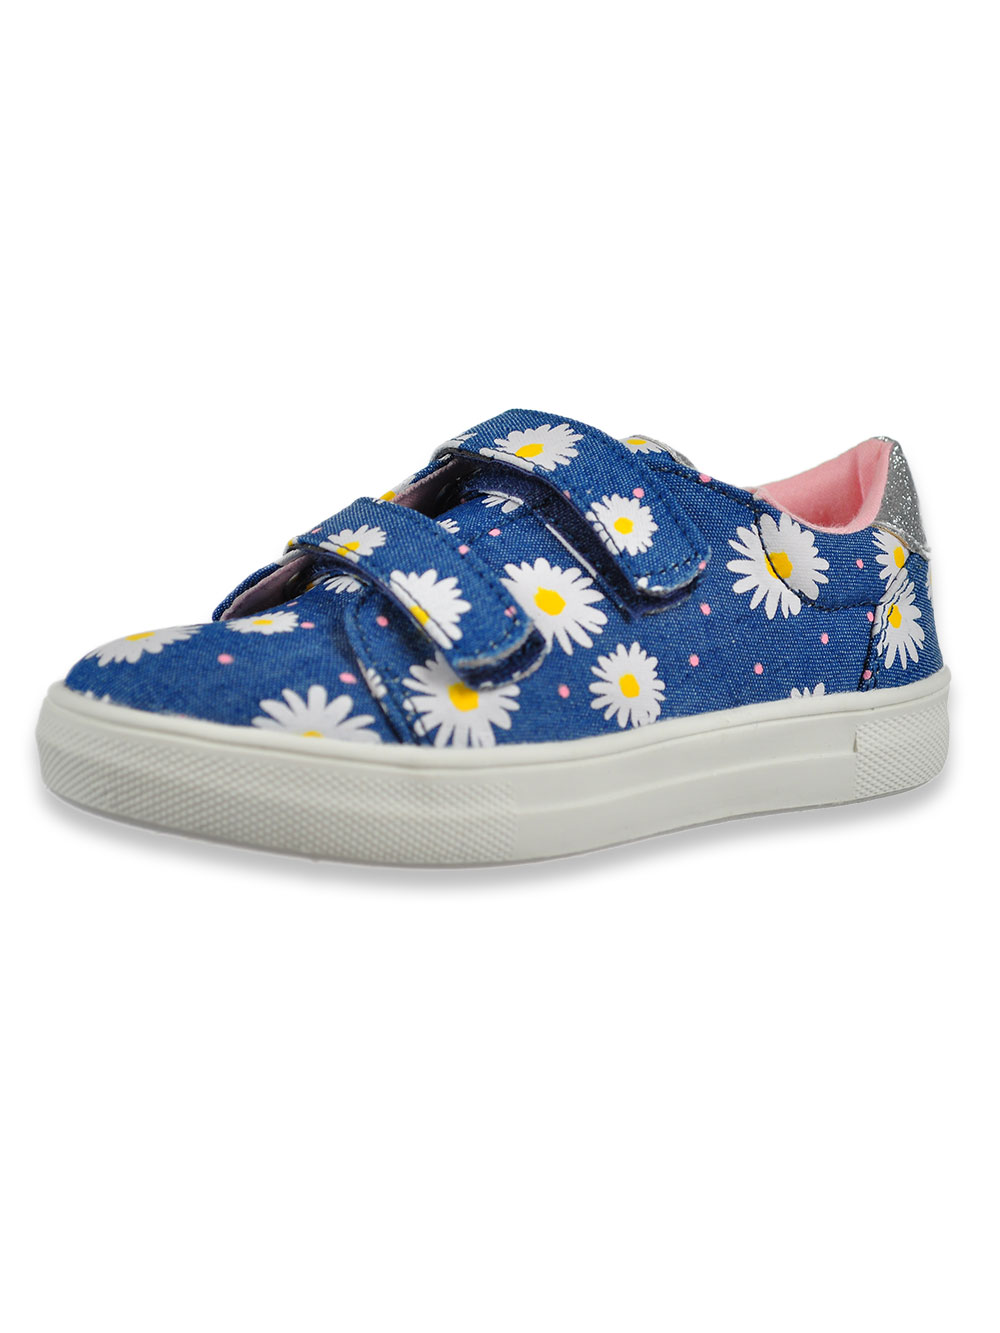 Girls' Floral Sneakers